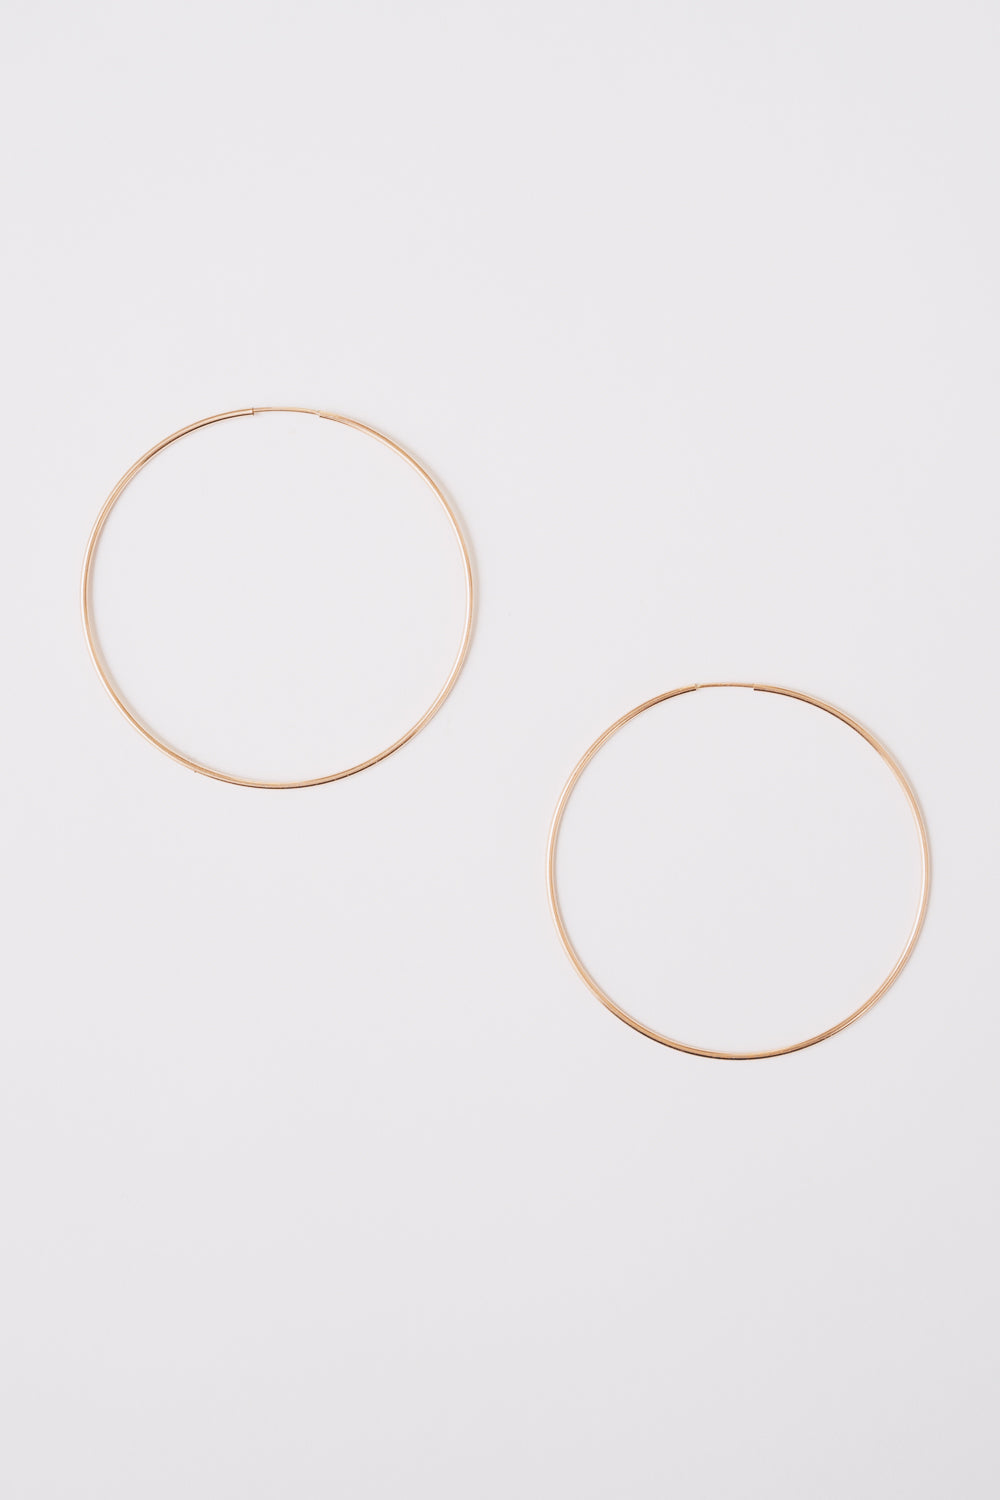 Lola Hoop earrings | 14K Gold-Filled and Sterling Silver | Janna Conner